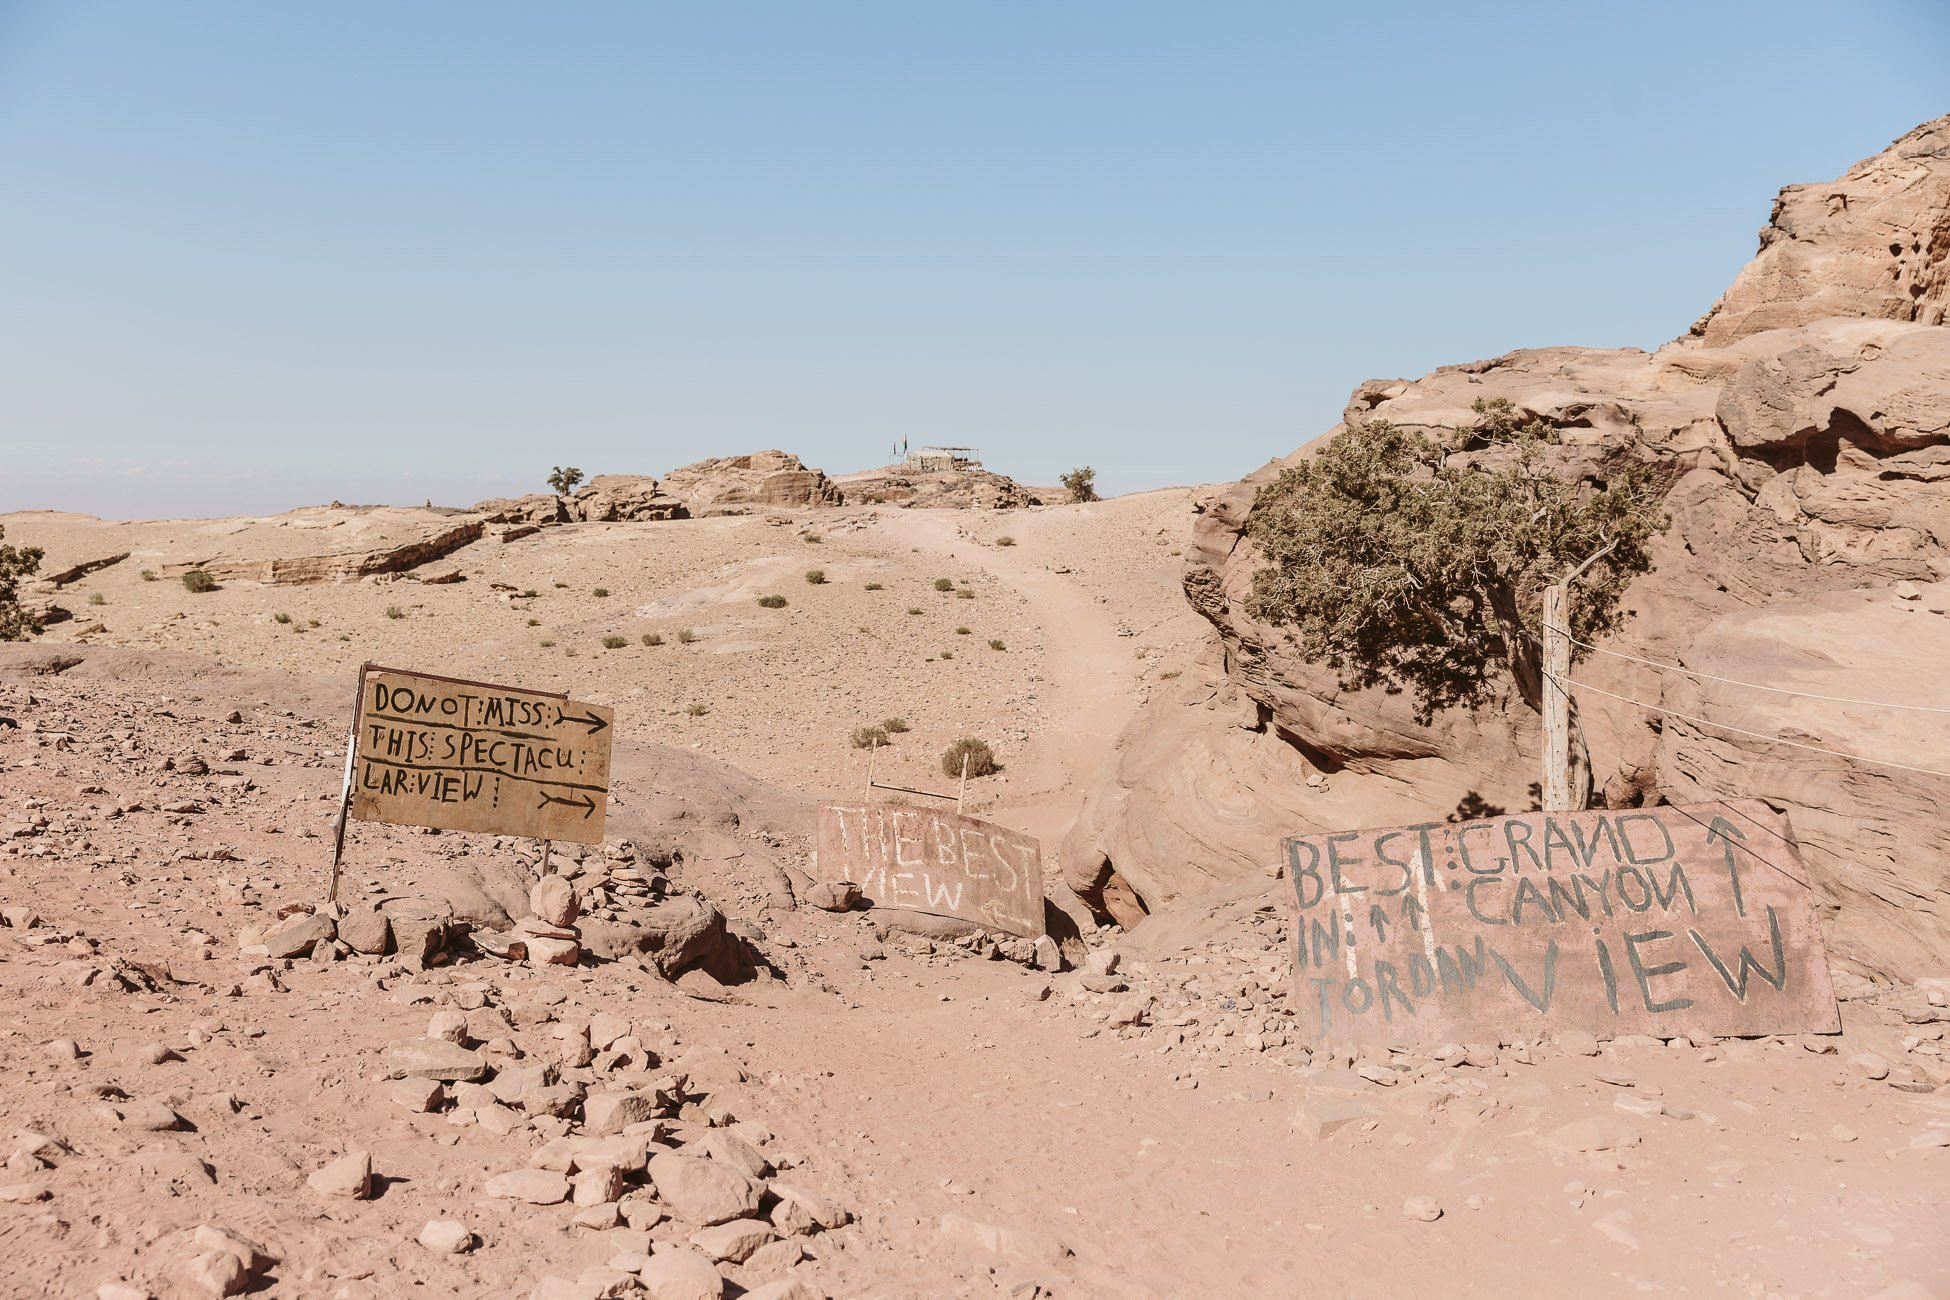 Signs pointing to the Best View in Petra Jordan